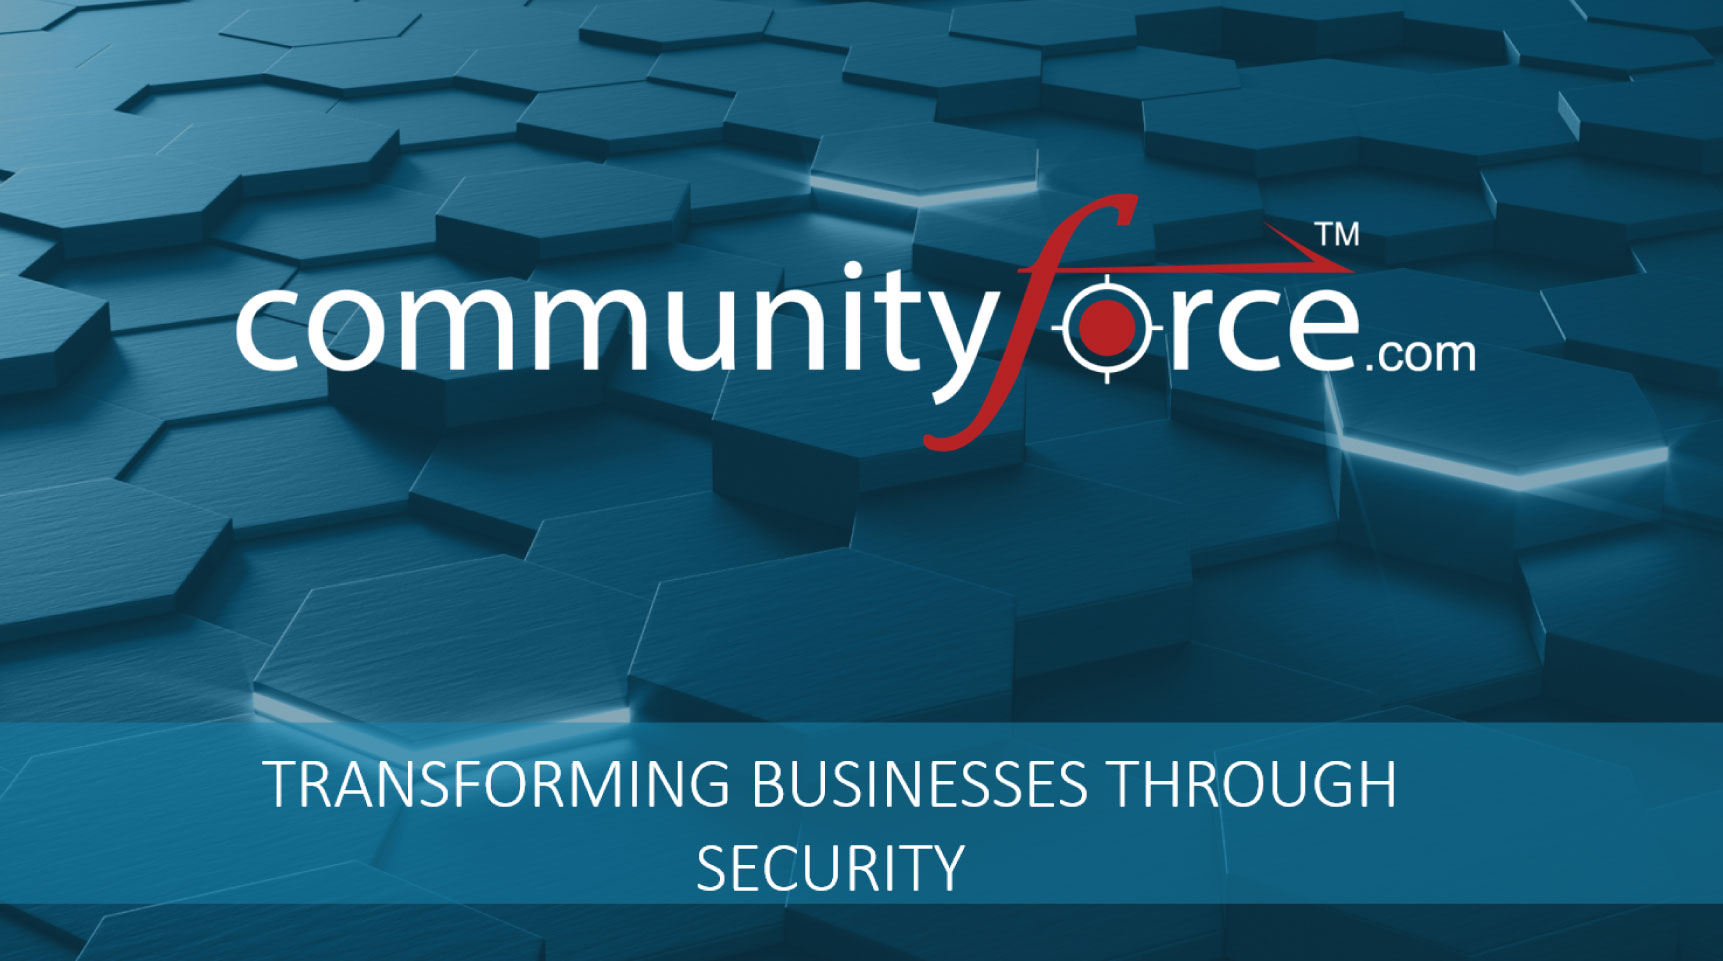 CommunityForce Partner Opportunity Security Services